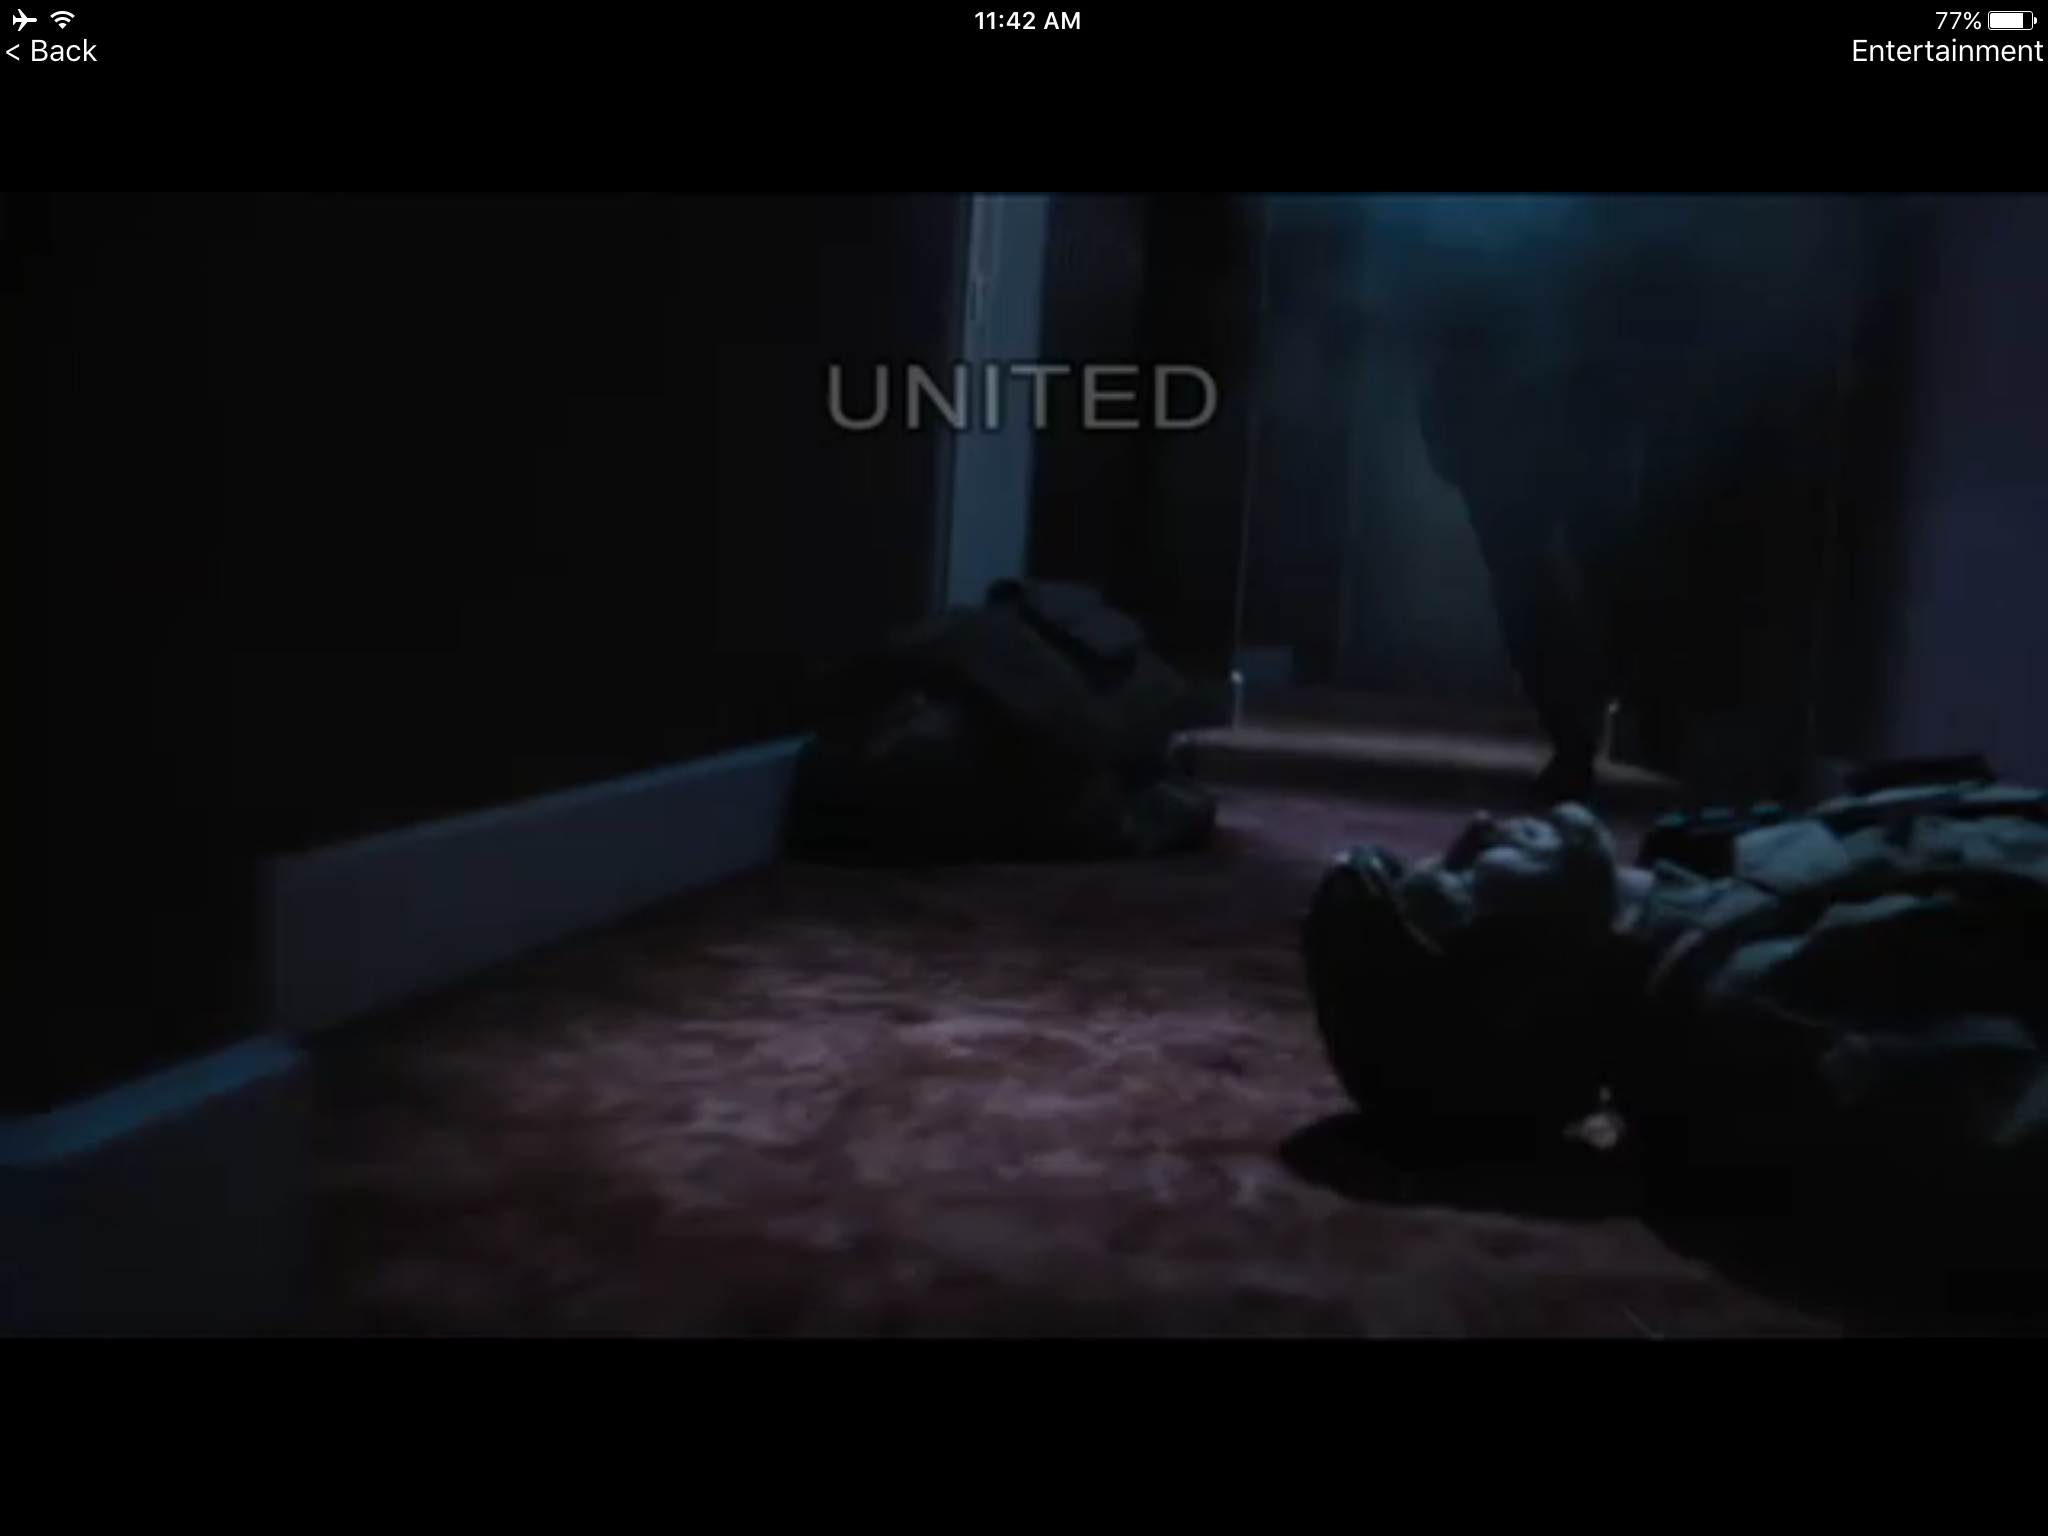 The United watermark, an anti-piracy measure, showed up once during the movie.